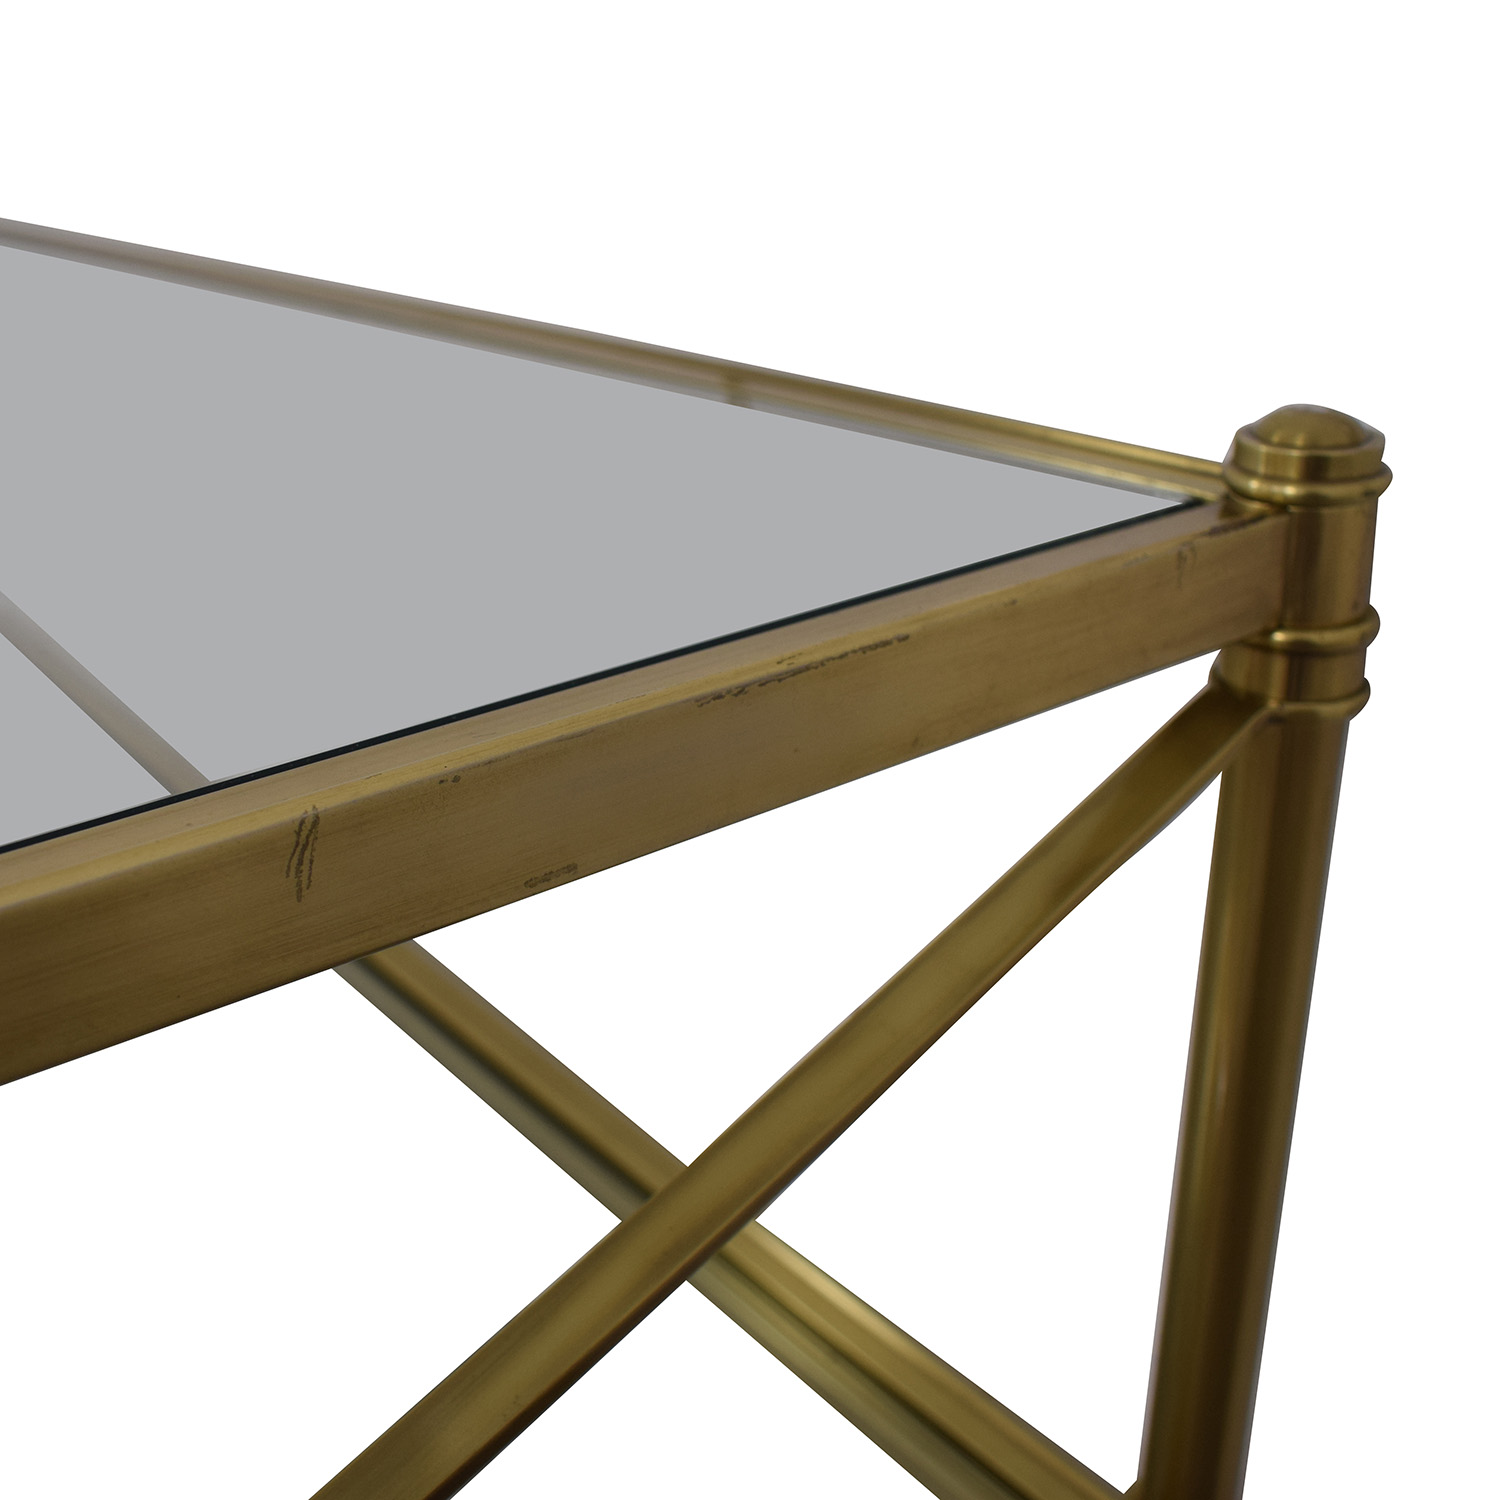 Restoration Hardware Glass and Gold Chrome Coffee Table / Coffee Tables